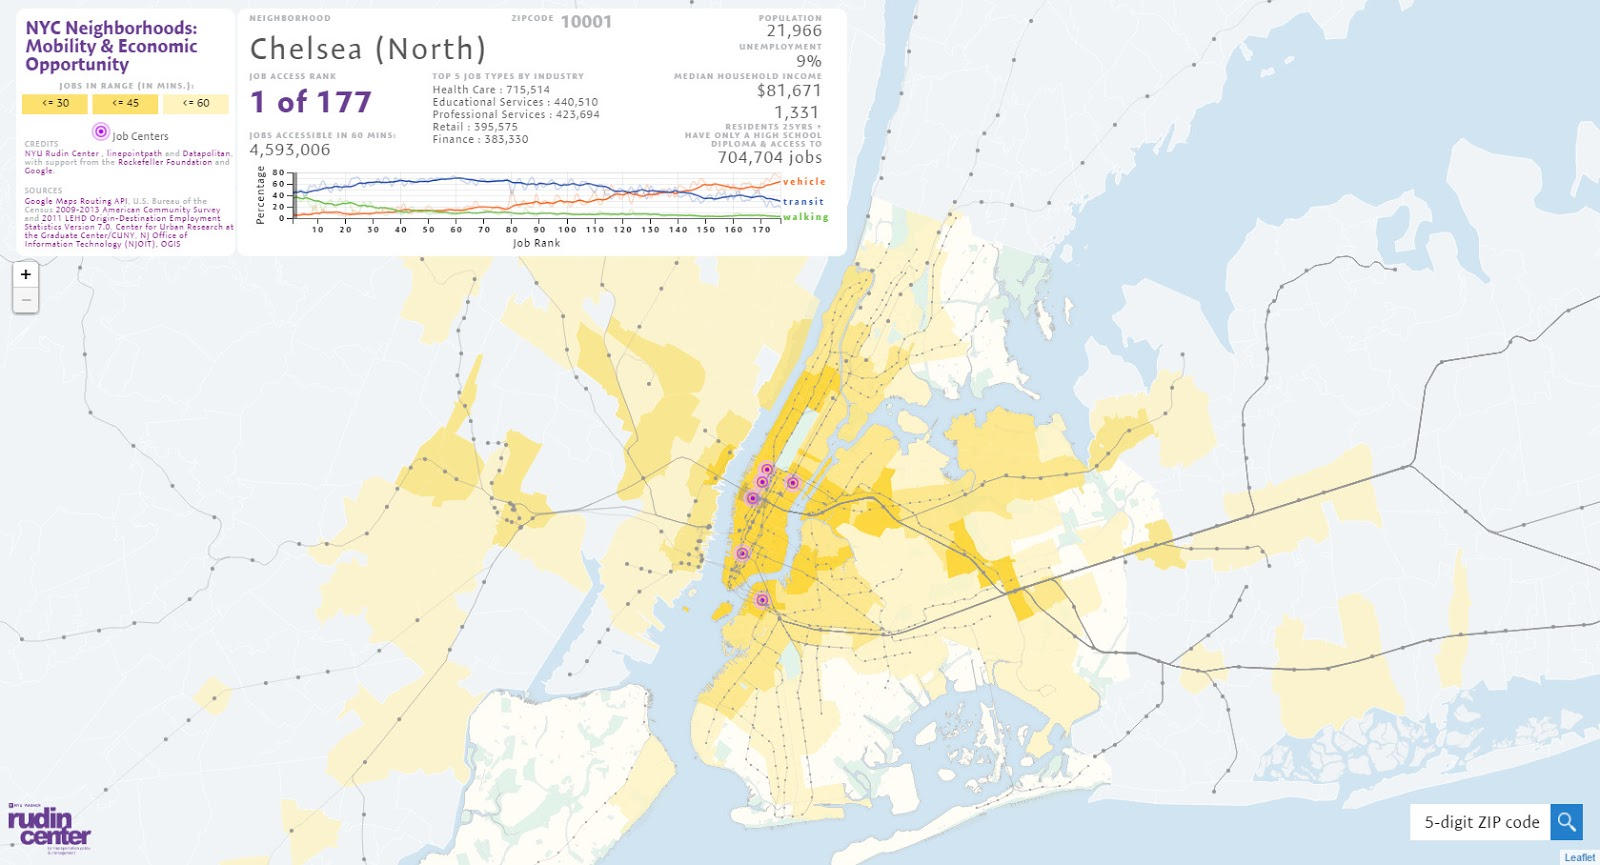 NYC neighborhoods: Mobility and Economic Opportunity